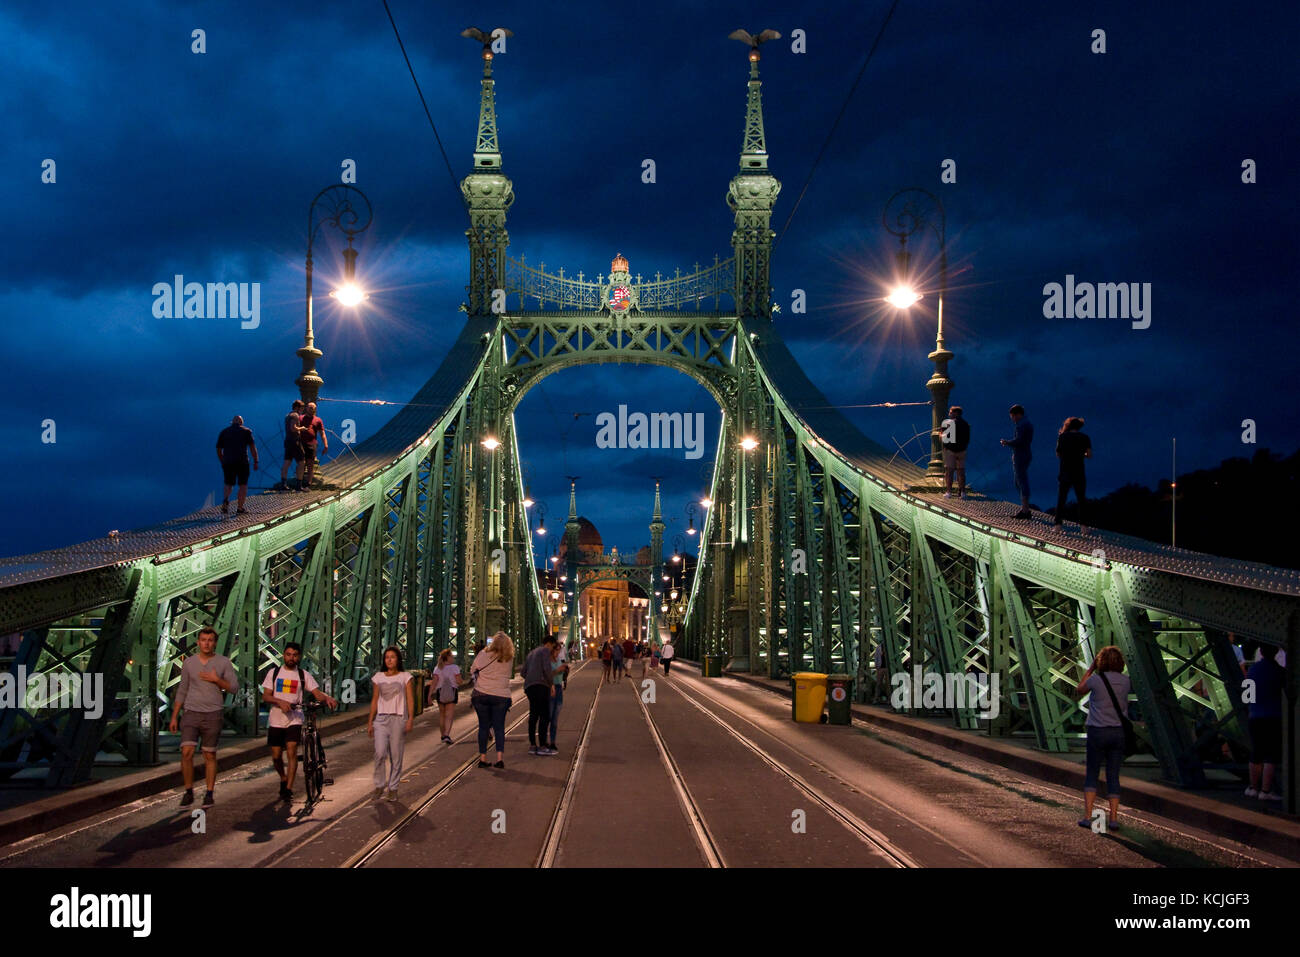 walking hungary stockfotos walking hungary bilder seite 2 alamy. Black Bedroom Furniture Sets. Home Design Ideas